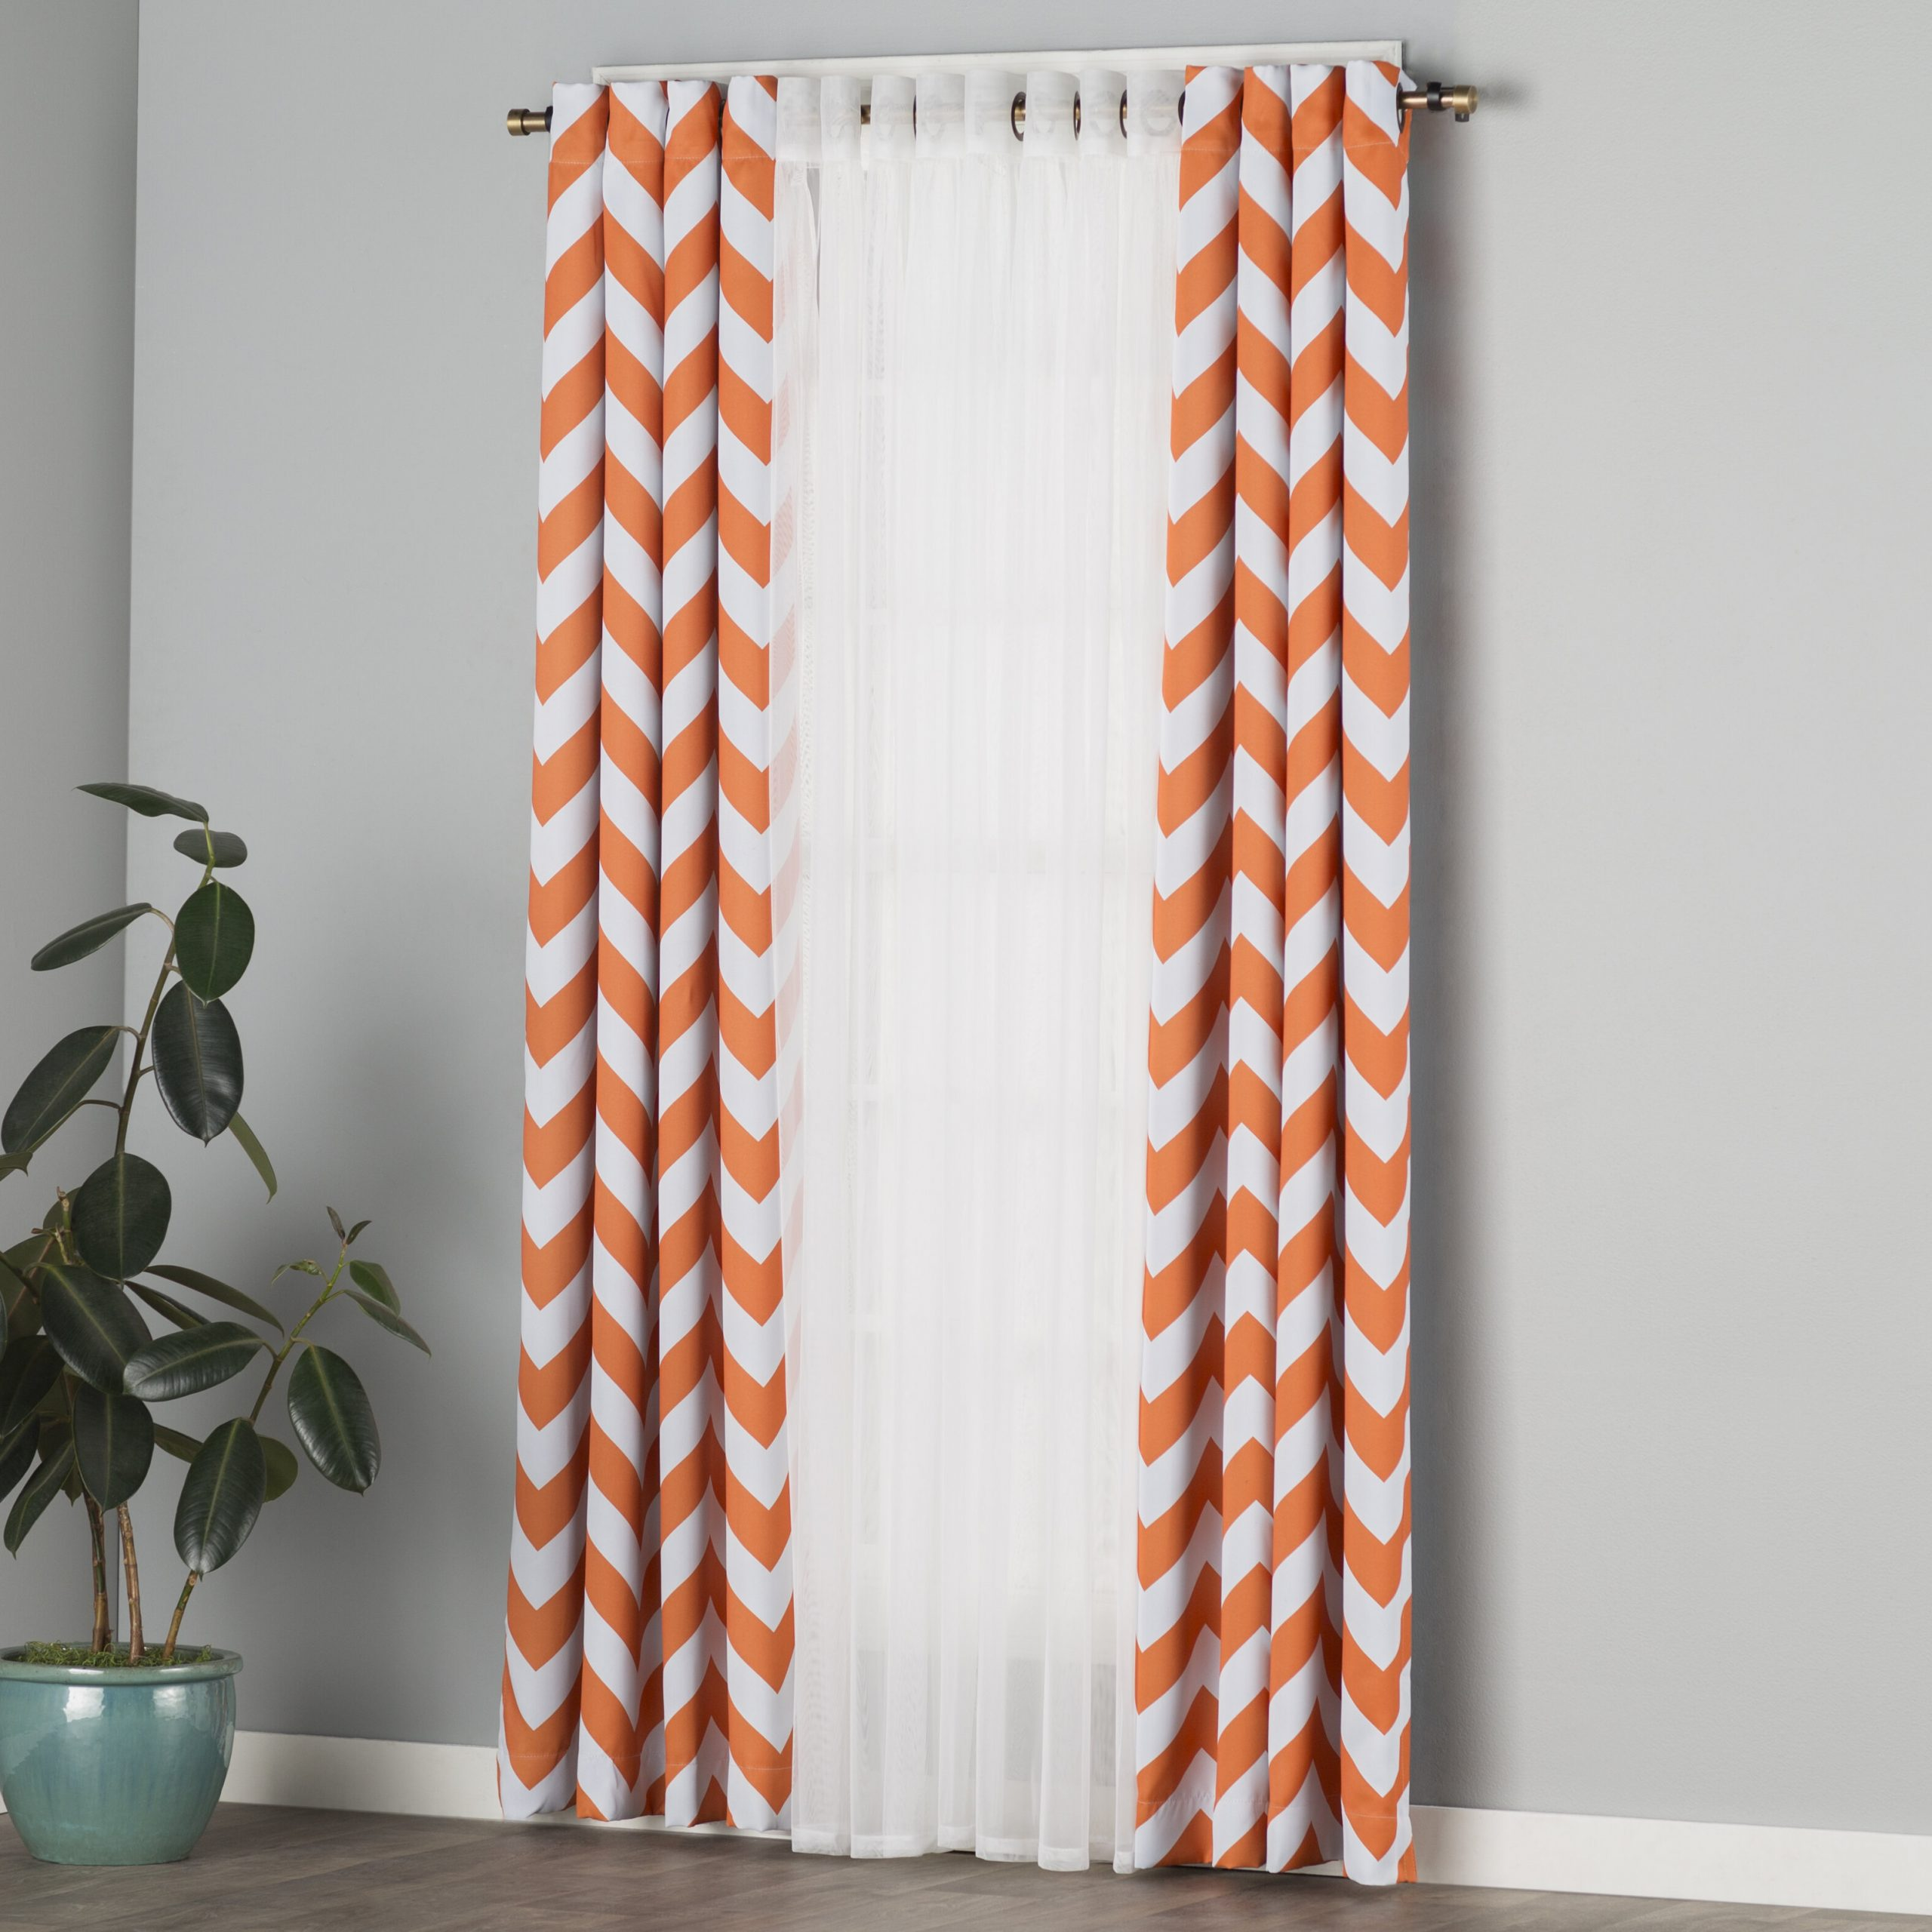 Chevron Blackout Grommet Curtain Panels With Well Known Barlowe Tulle Chevron Blackout Grommet Curtain Panels (View 17 of 20)